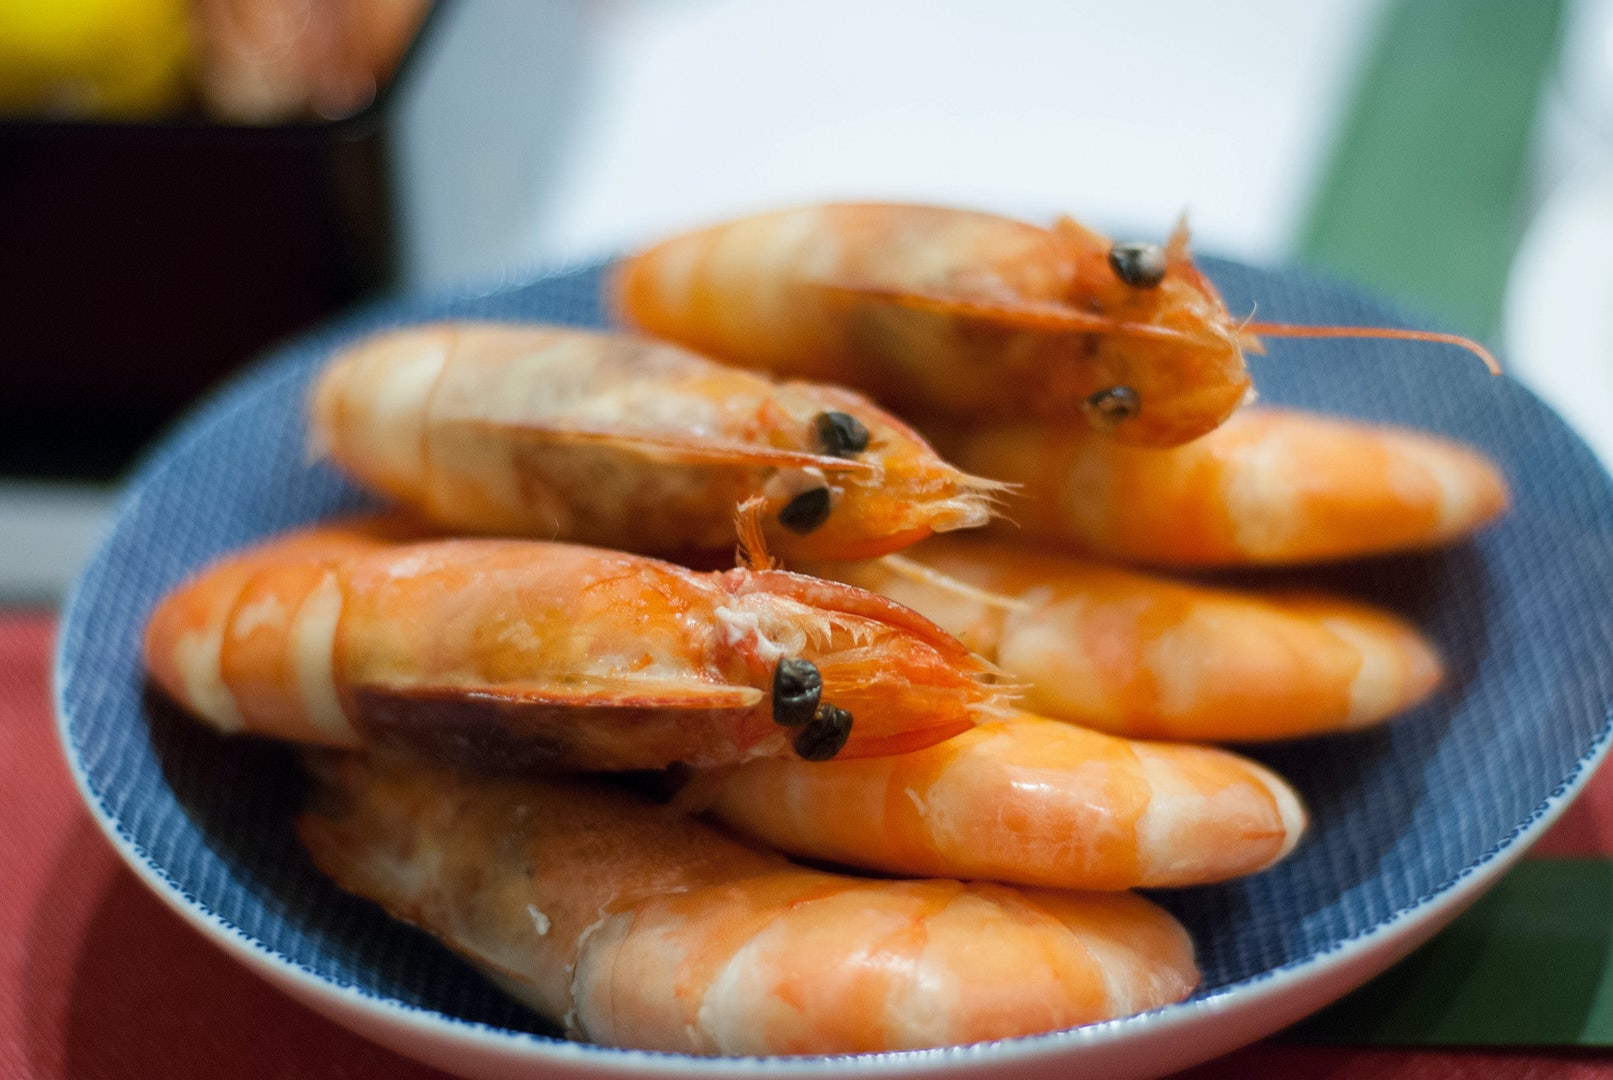 a plate of cooked shrimps